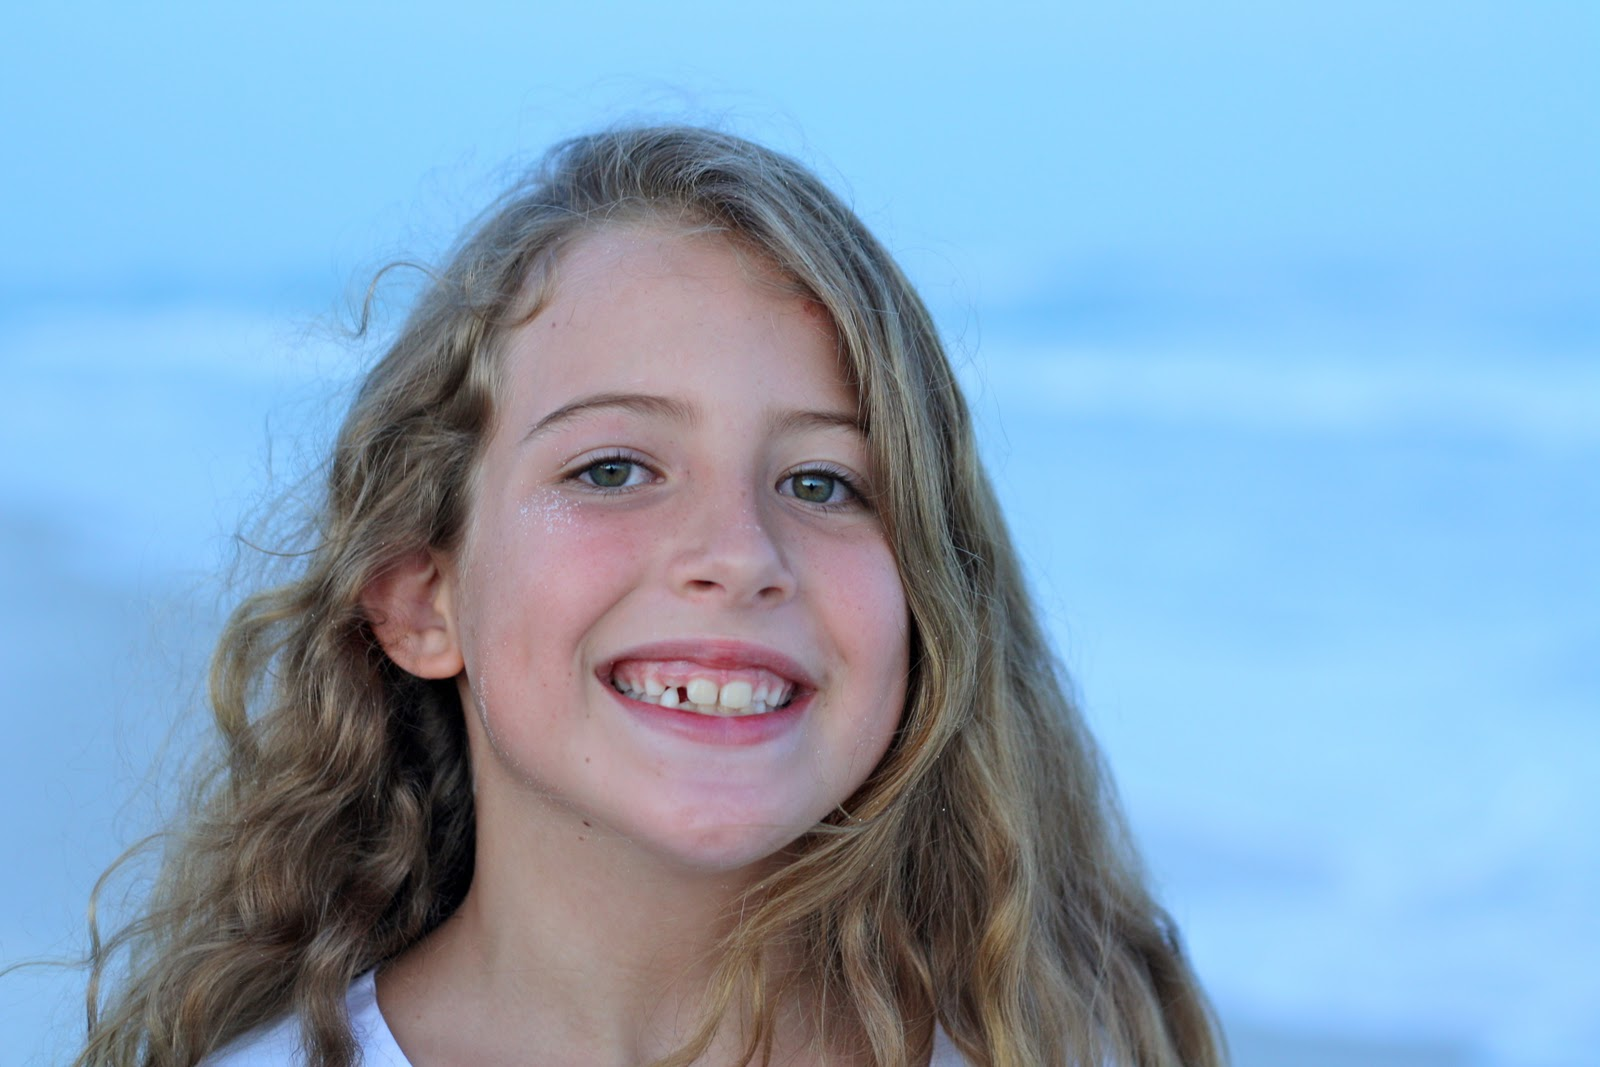 Our Ellen turned 10 last week. Wow, 10 years old. We are so proud of ...